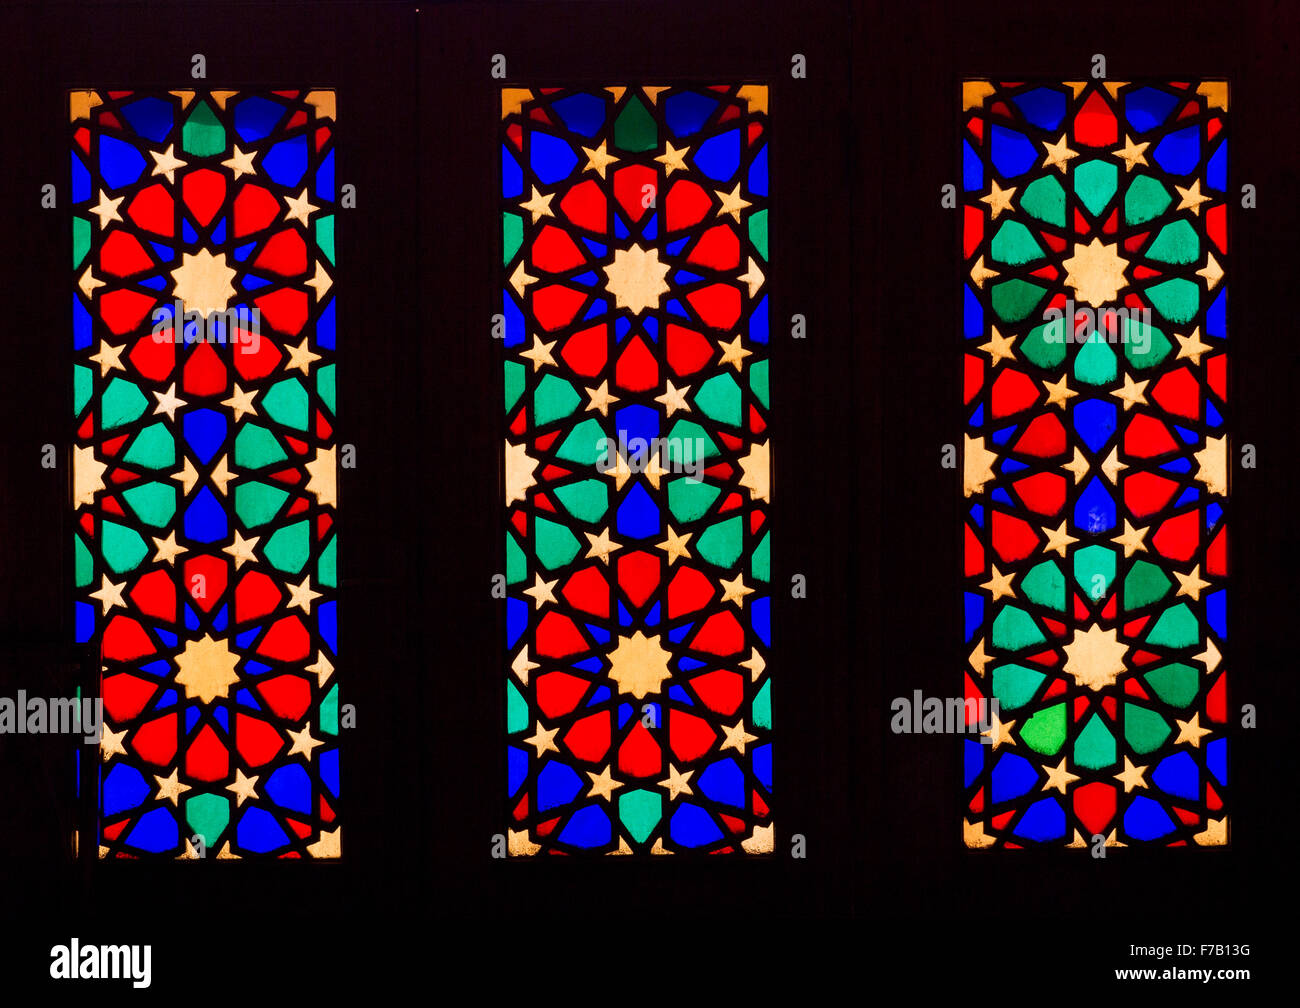 Stained Glass Windows In The Shah-e-cheragh Mausoleum, Fars Province, Shiraz, Iran - Stock Image